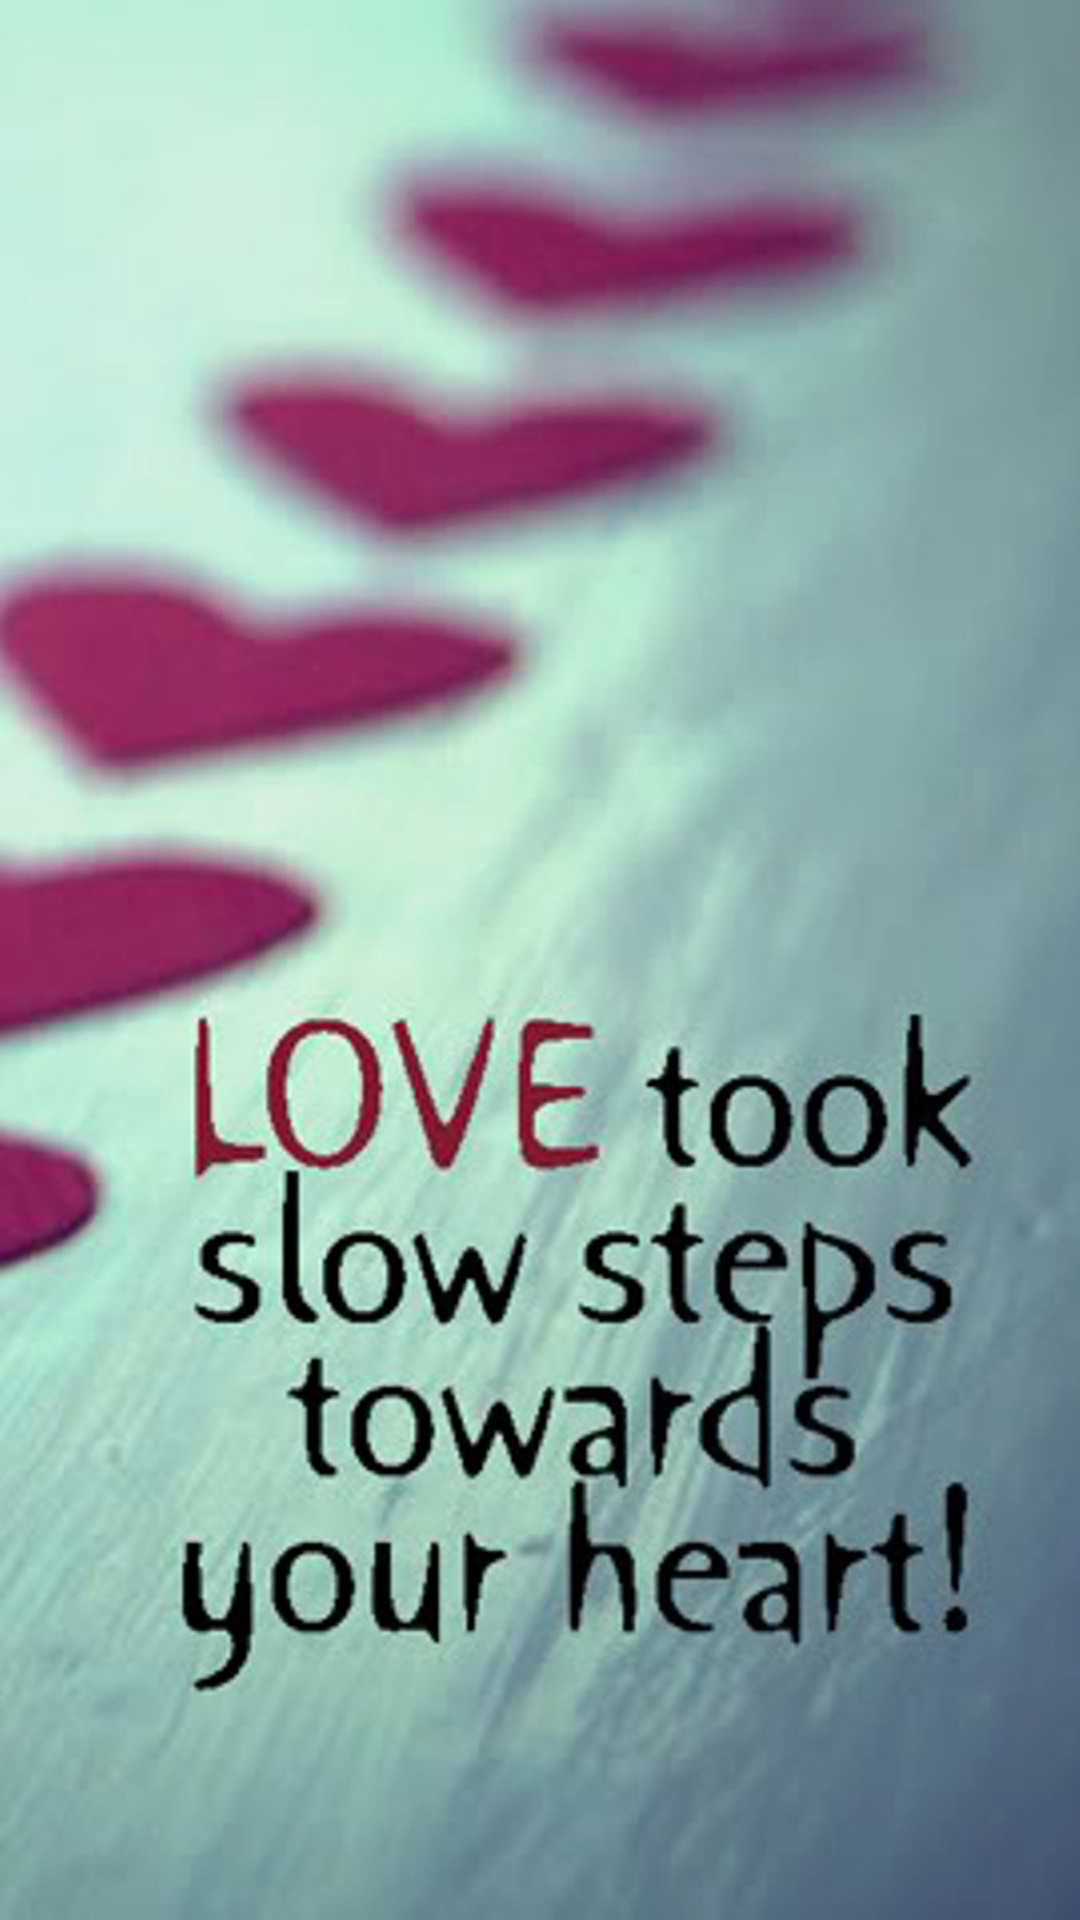 Heart Touching Love Quotes Wallpapers Slow Love Steps